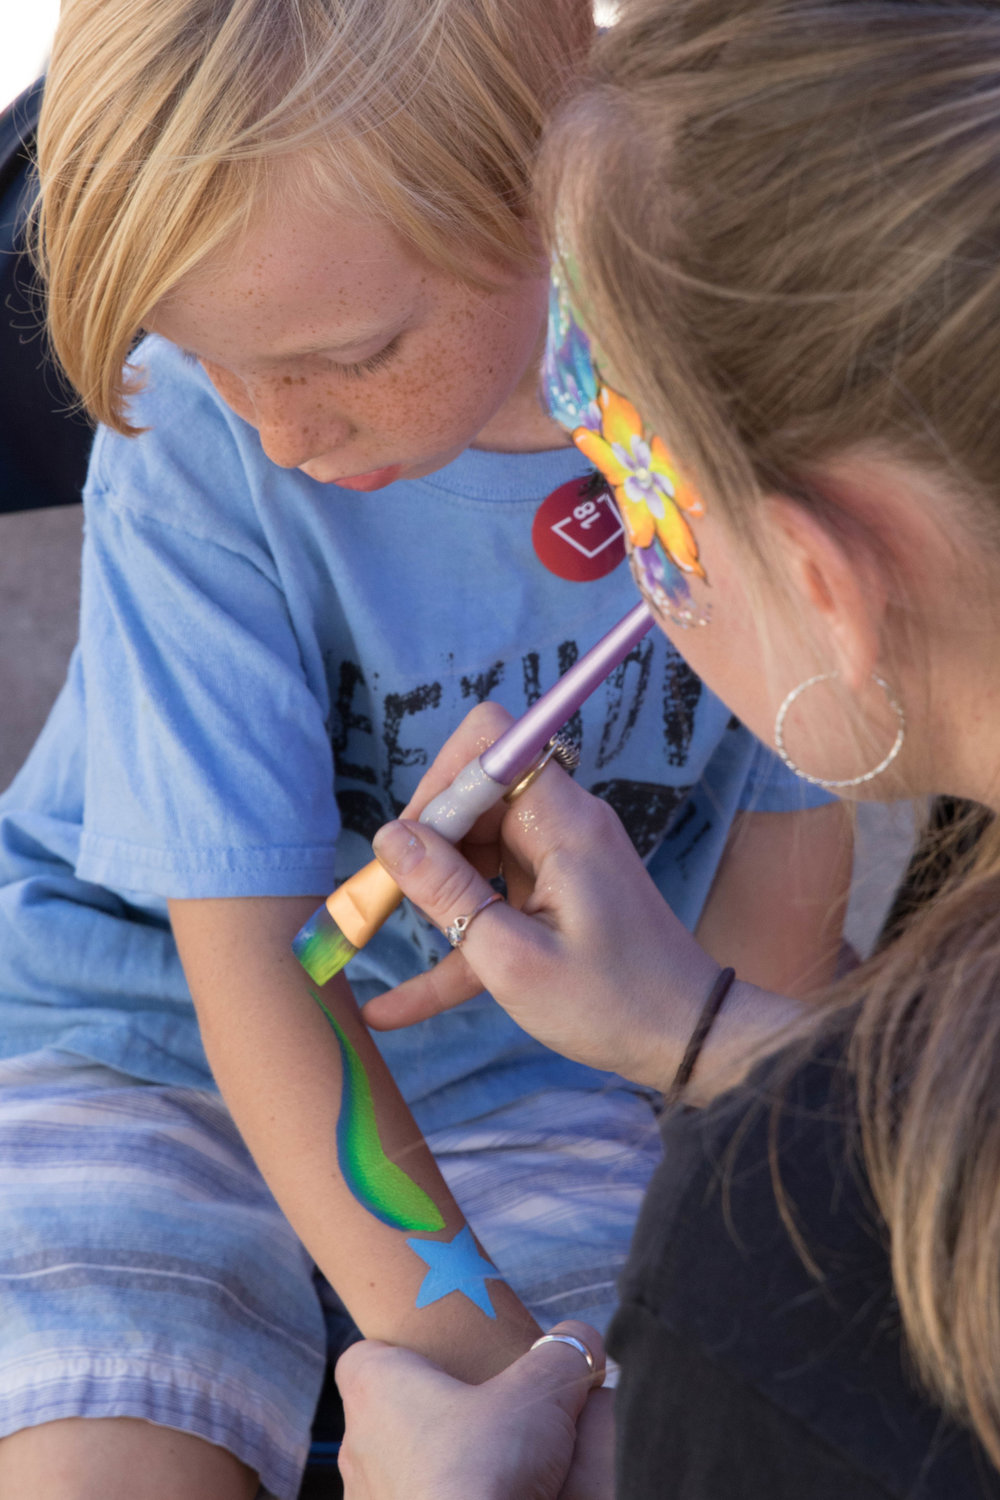 Rylan Boothby (left) gets an arm drawing done by Oriana as part of the Pico Block Party on October 14, 2017 (Photo By: Zane Meyer-Thornton)